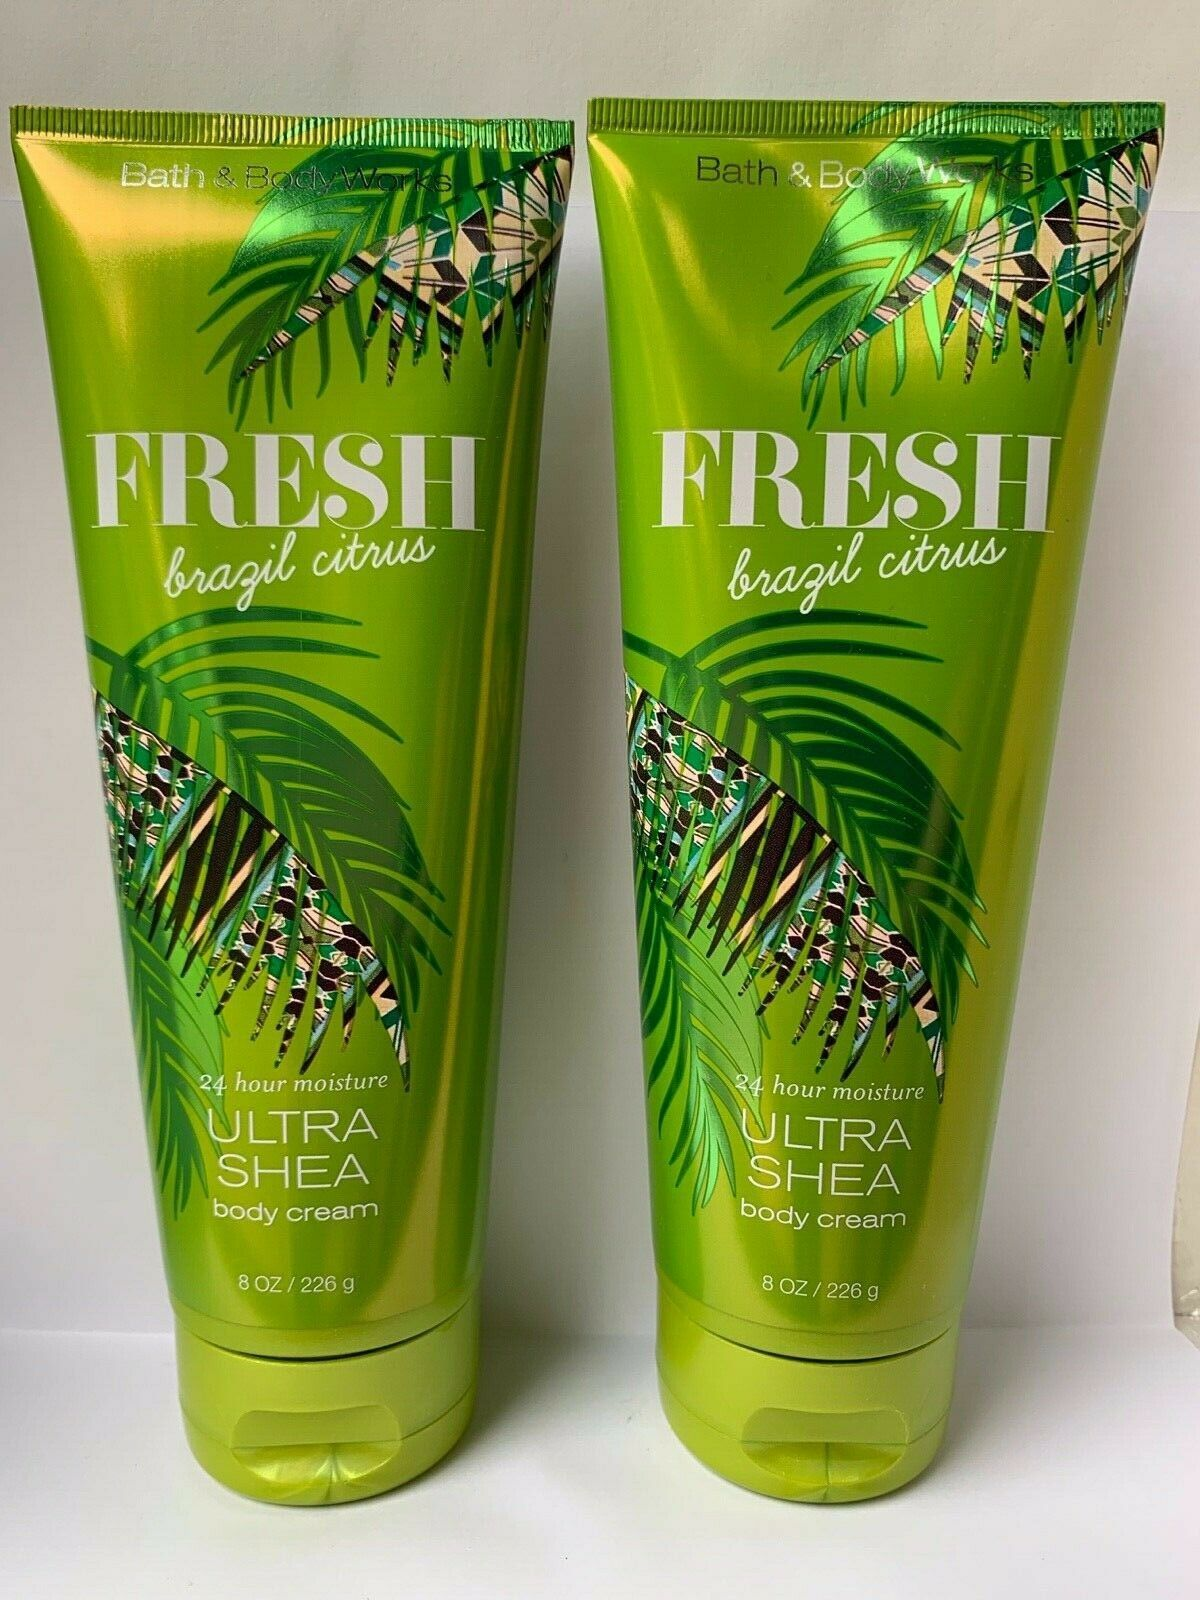 Bath and Body Works FRESH BRAZIL CITRUS Pineapple Mango Tiare Flower Cream x2